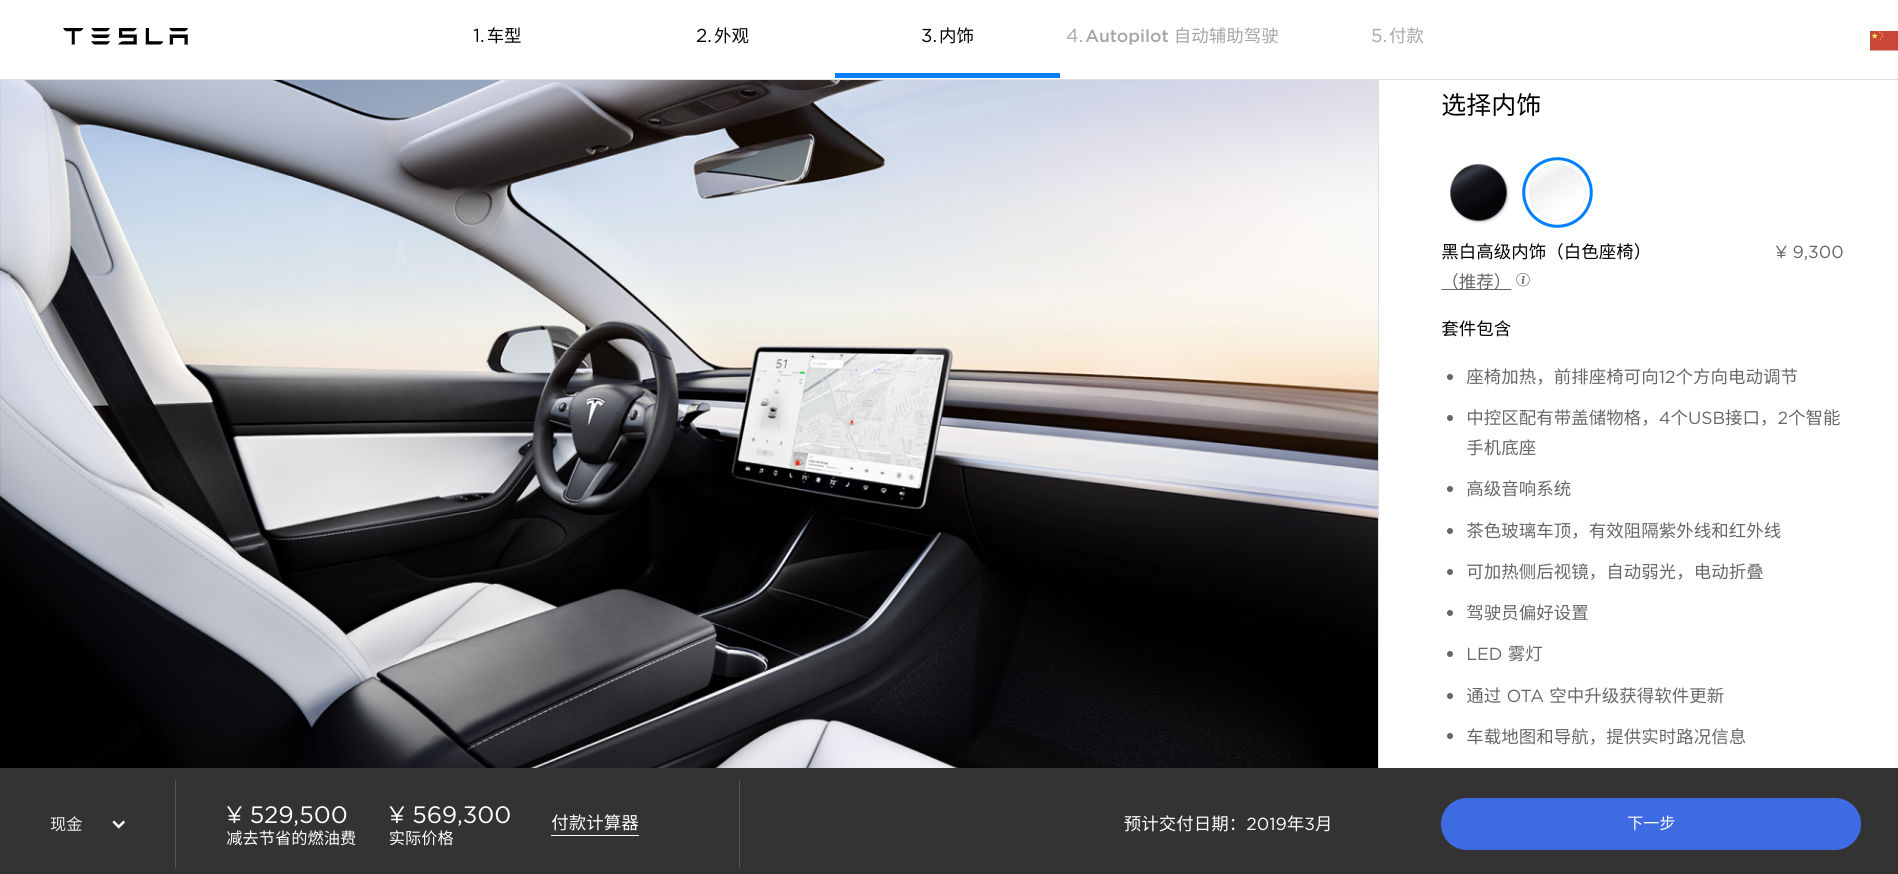 model-3-configurator-china-interior-white